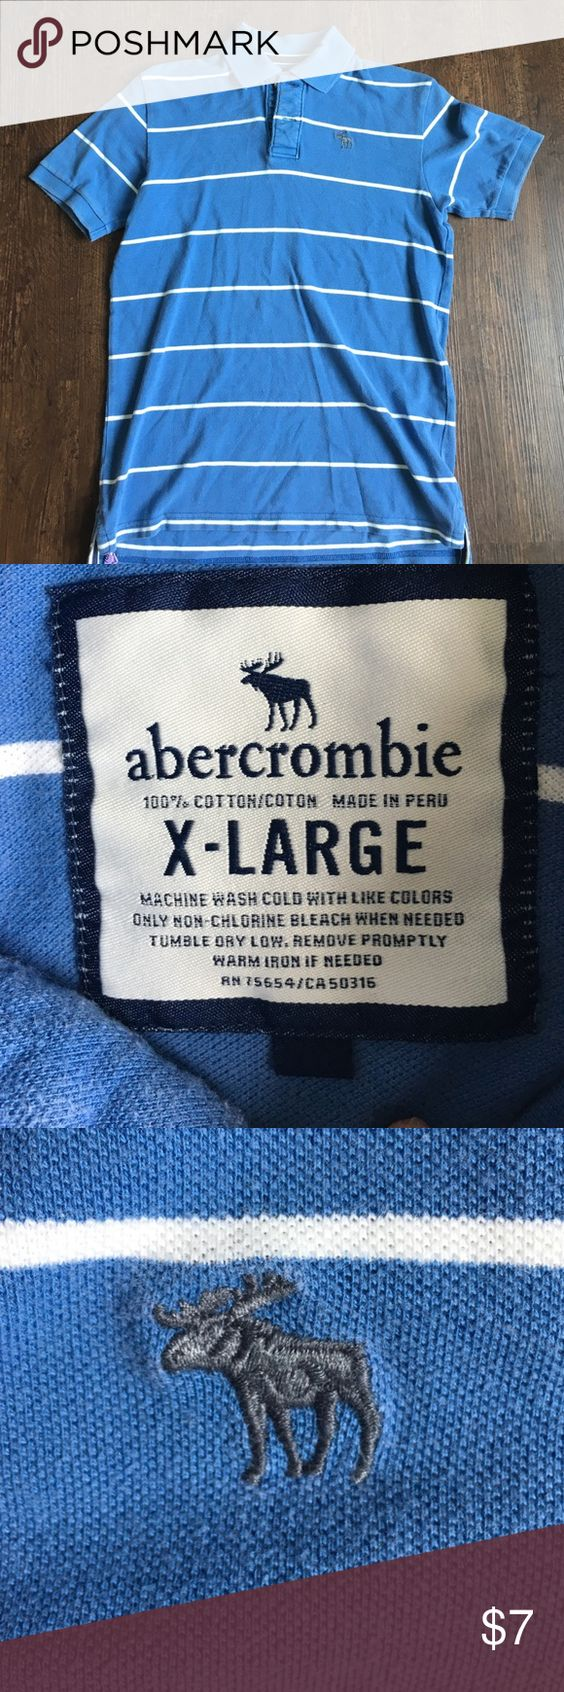 ABERCROMBIE & FITCH POLO TEE SHIRT ABERCROMBIE & FITCH POLO TEE SHIRT Abercrombie & Fitch Shirts & Tops Polos